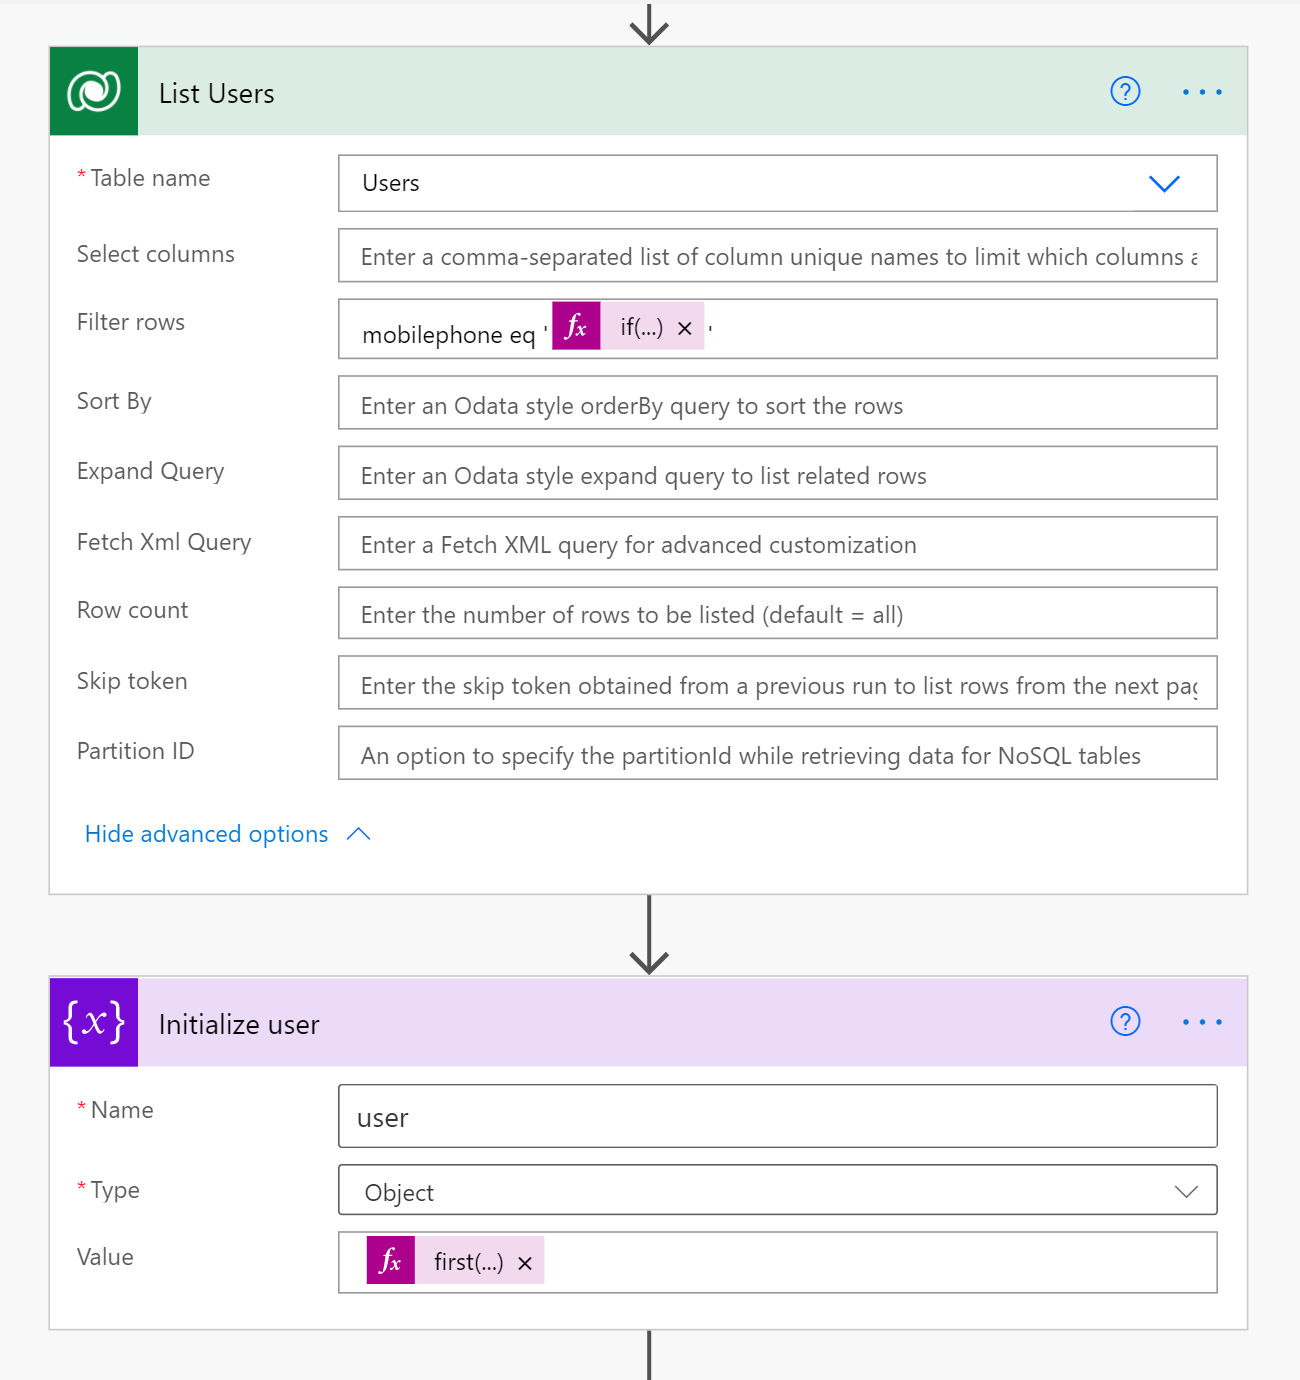 list users form in Power Automate